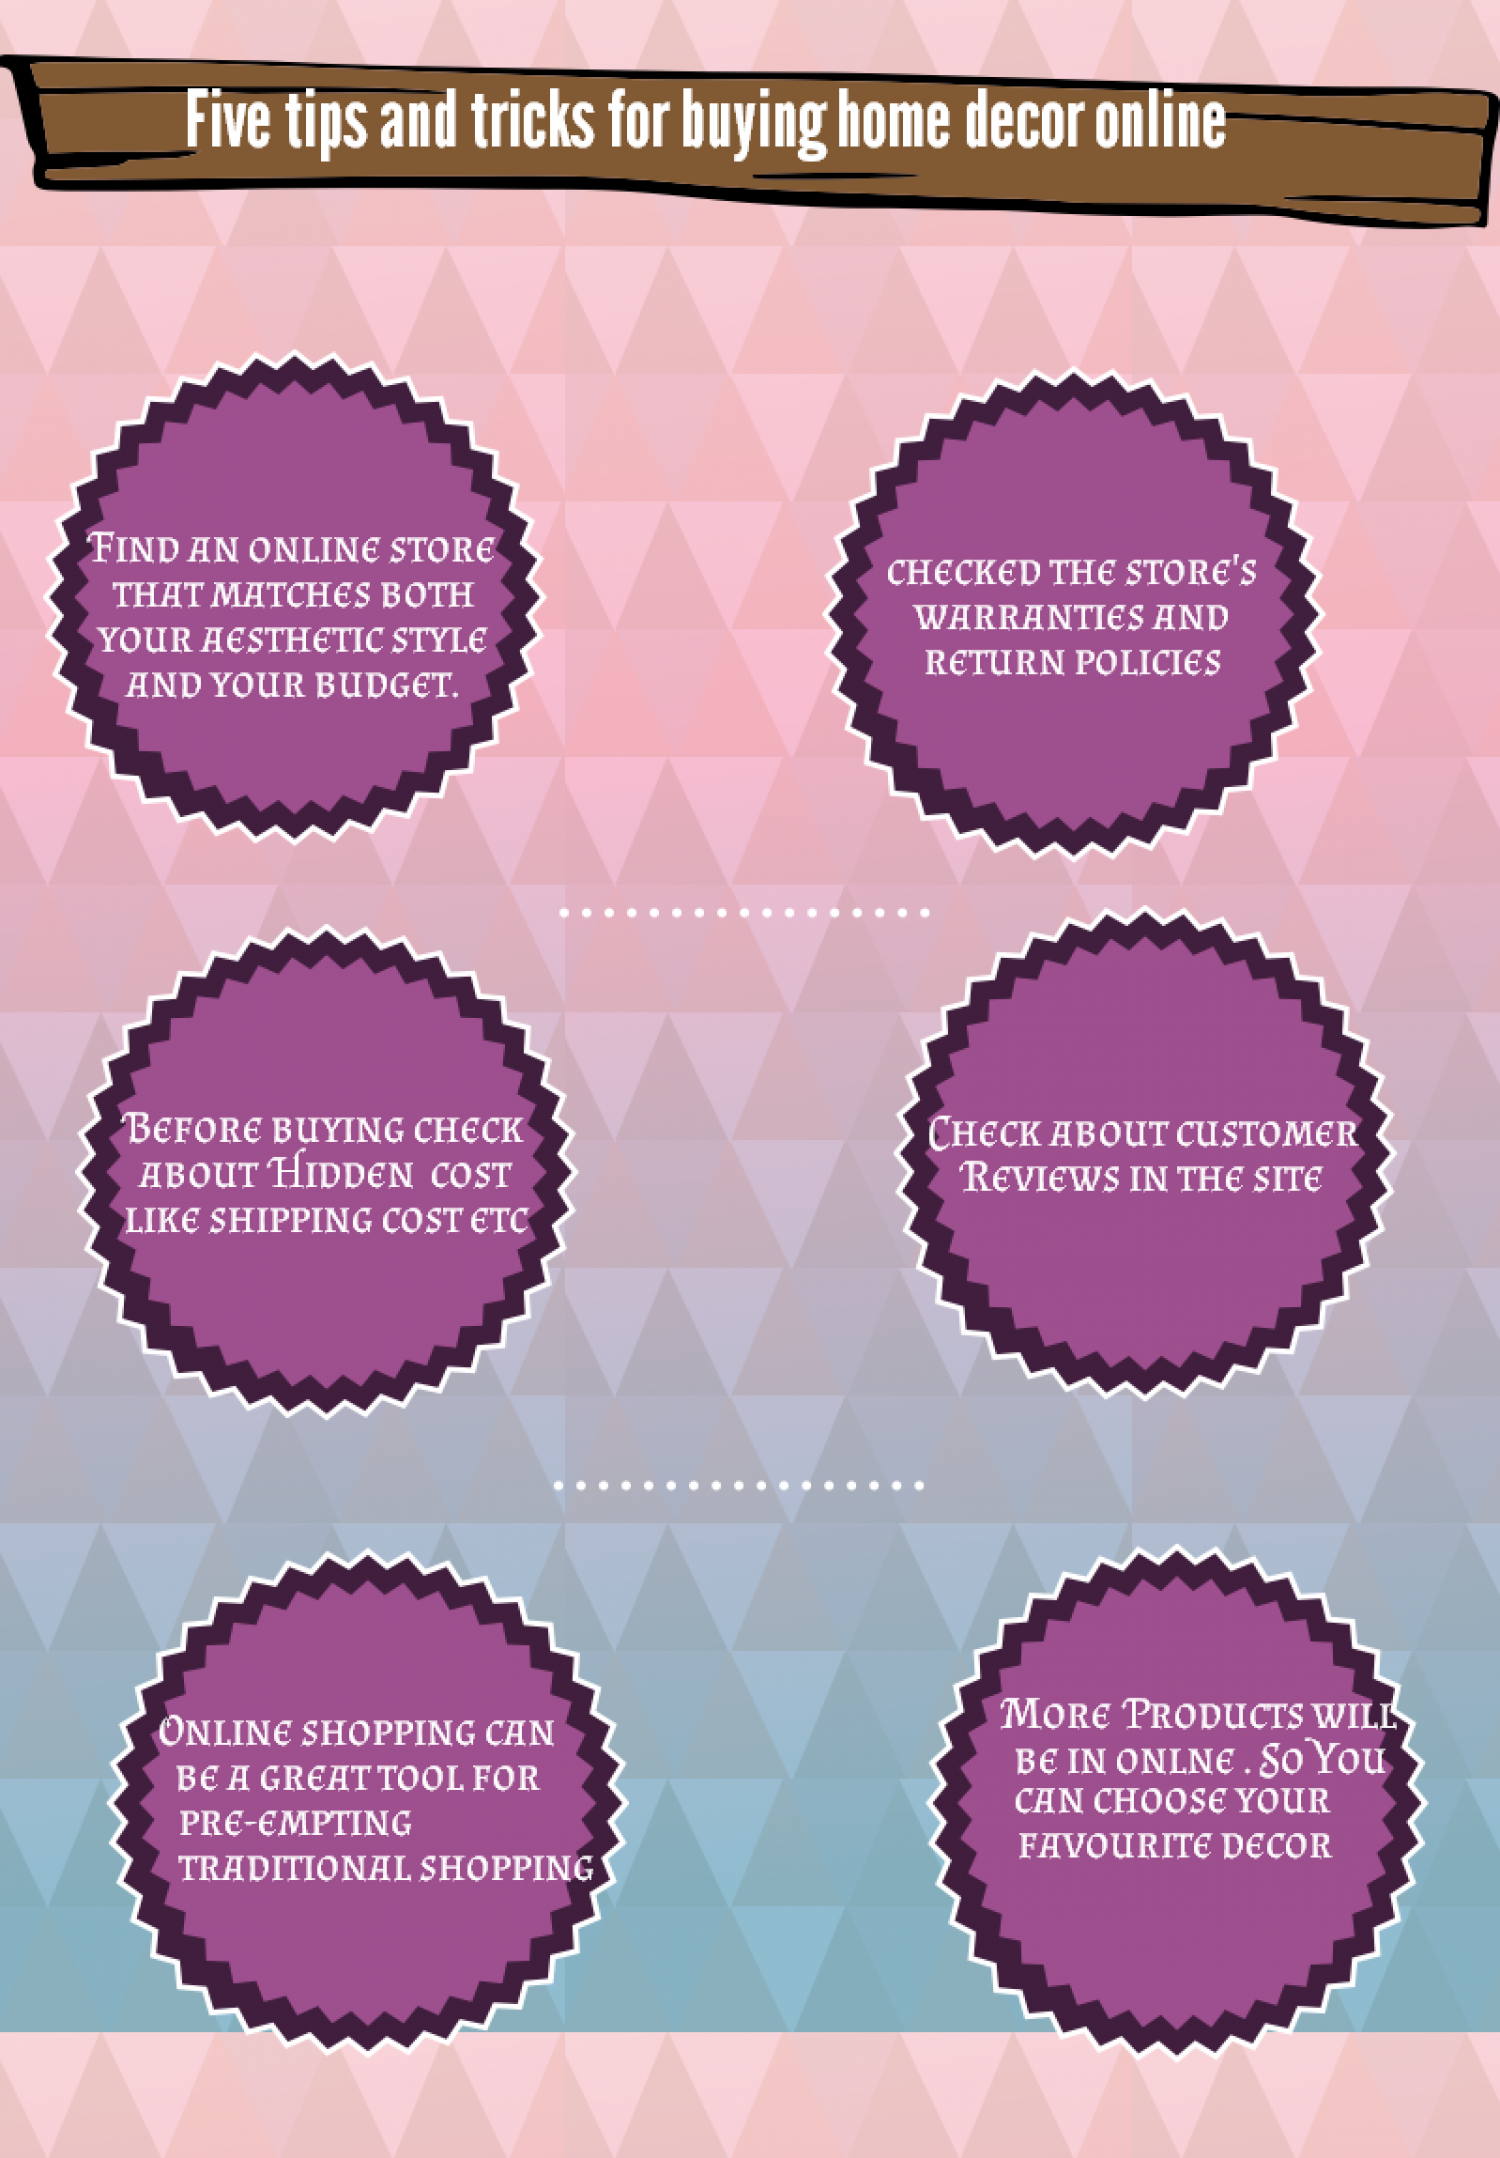 Tips and Tricks for Buying Home Decor Online Infographic